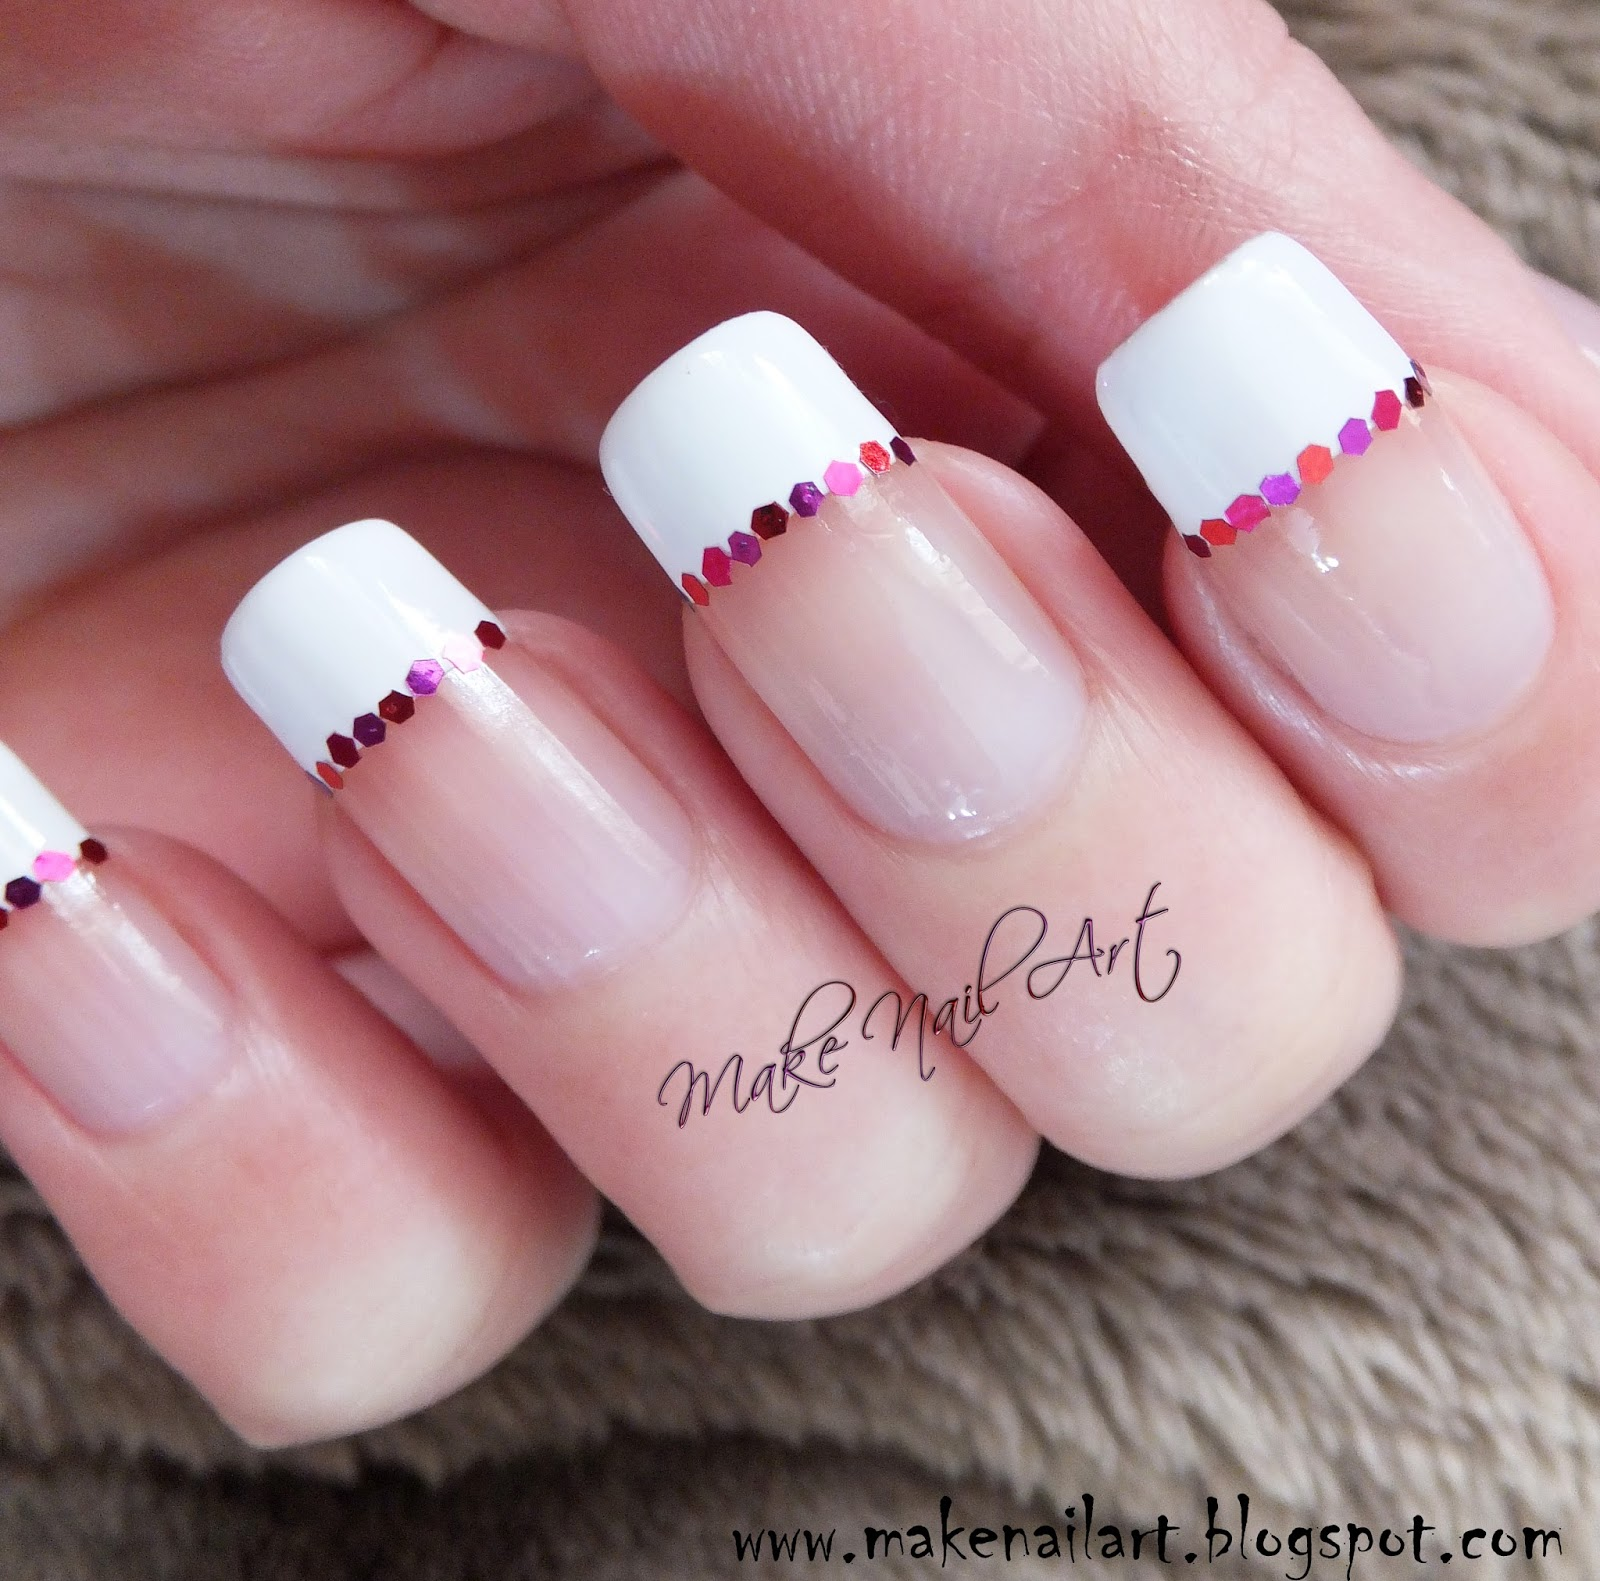 French nail art designs 2016 – European standards of manicure ...